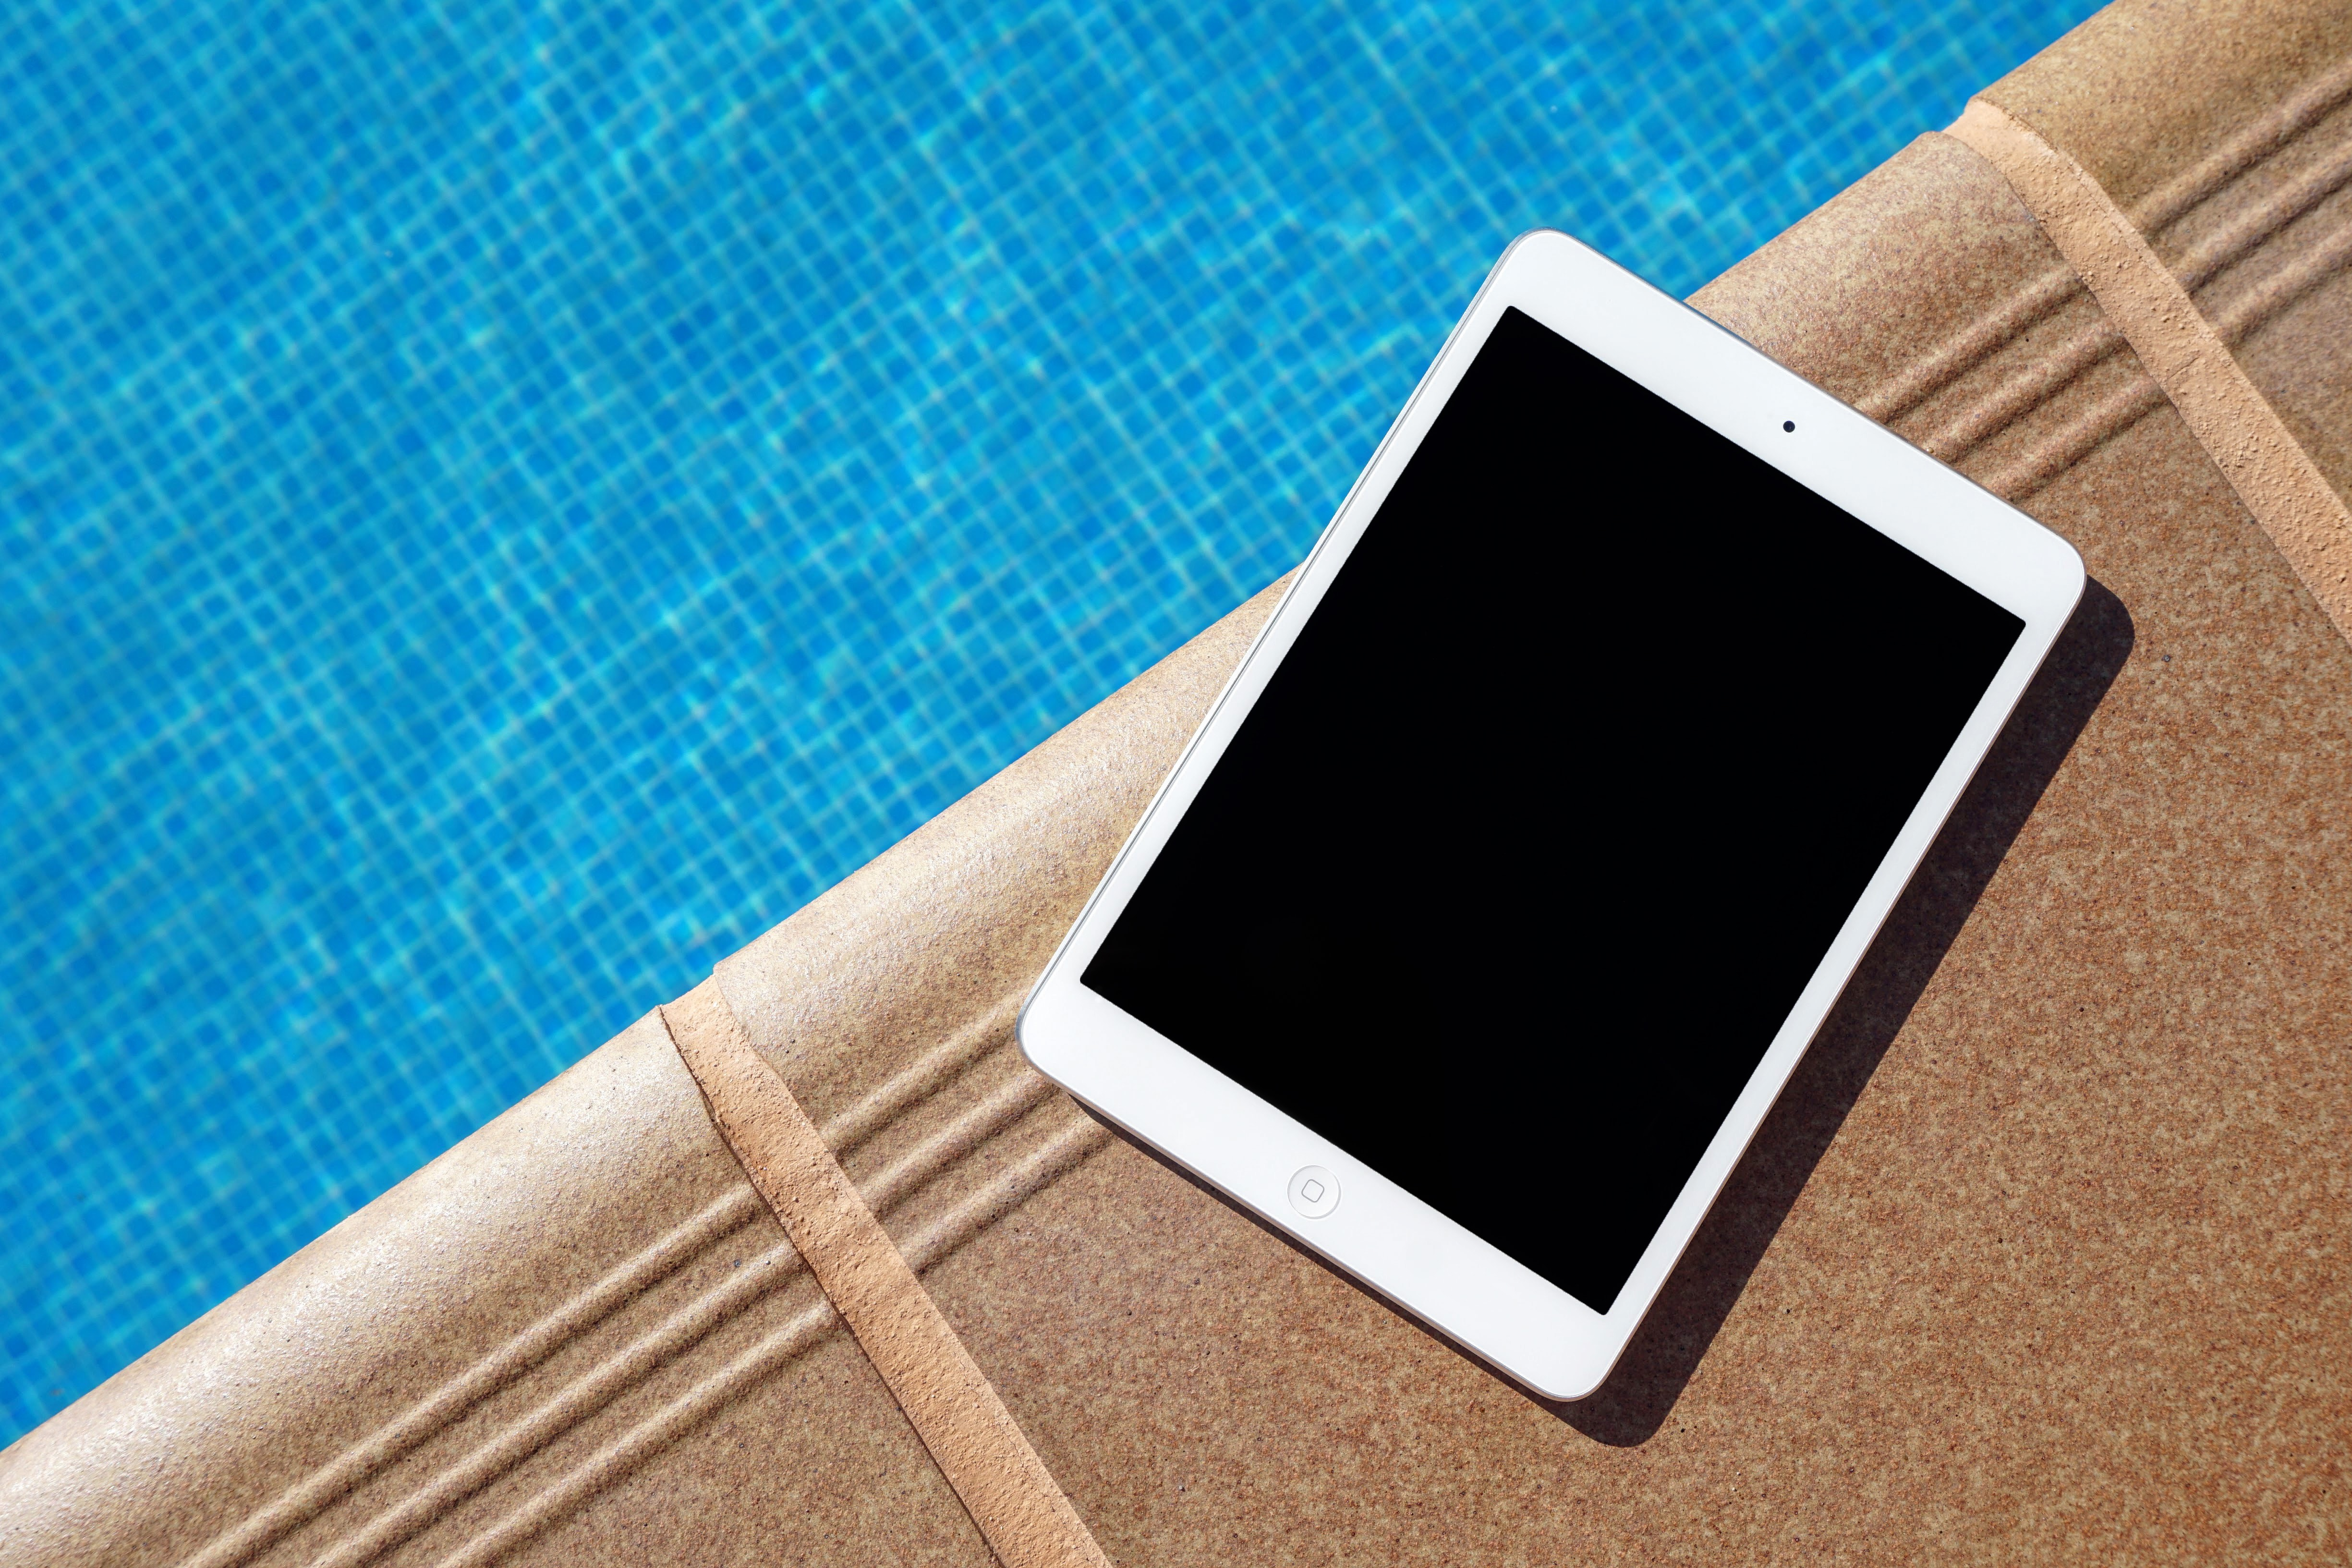 An iPad on the edge of a swimming pool